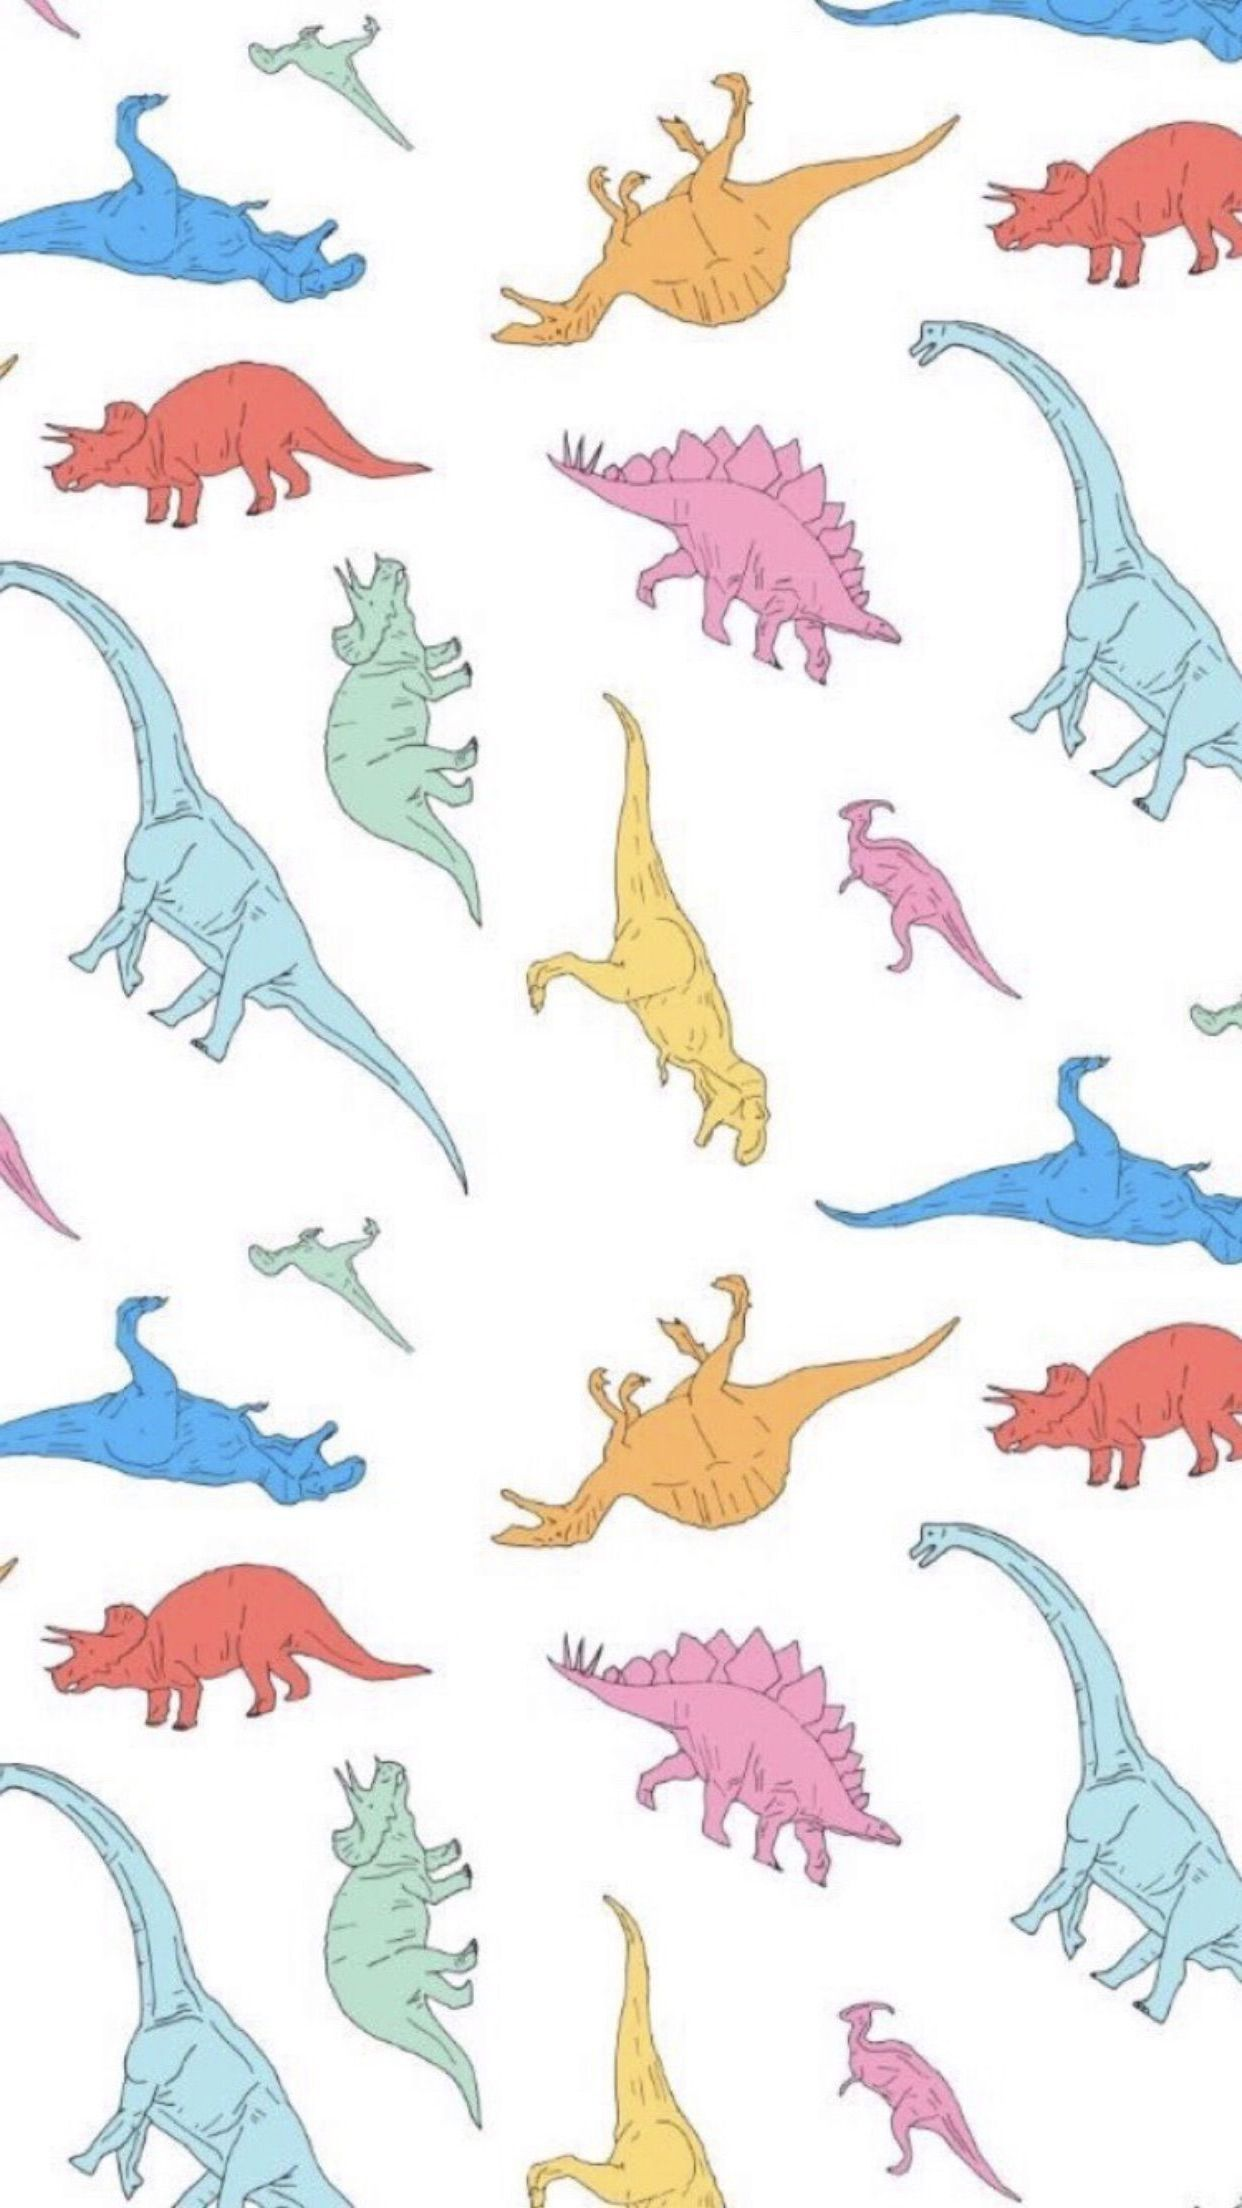 Cute Dinosaur Wallpaper For Mobile Phone Tablet Desktop Computer And Other Devices Hd And 4k Wallpapers In 2021 Dinosaur Wallpaper Cute Dinosaur Dinosaur